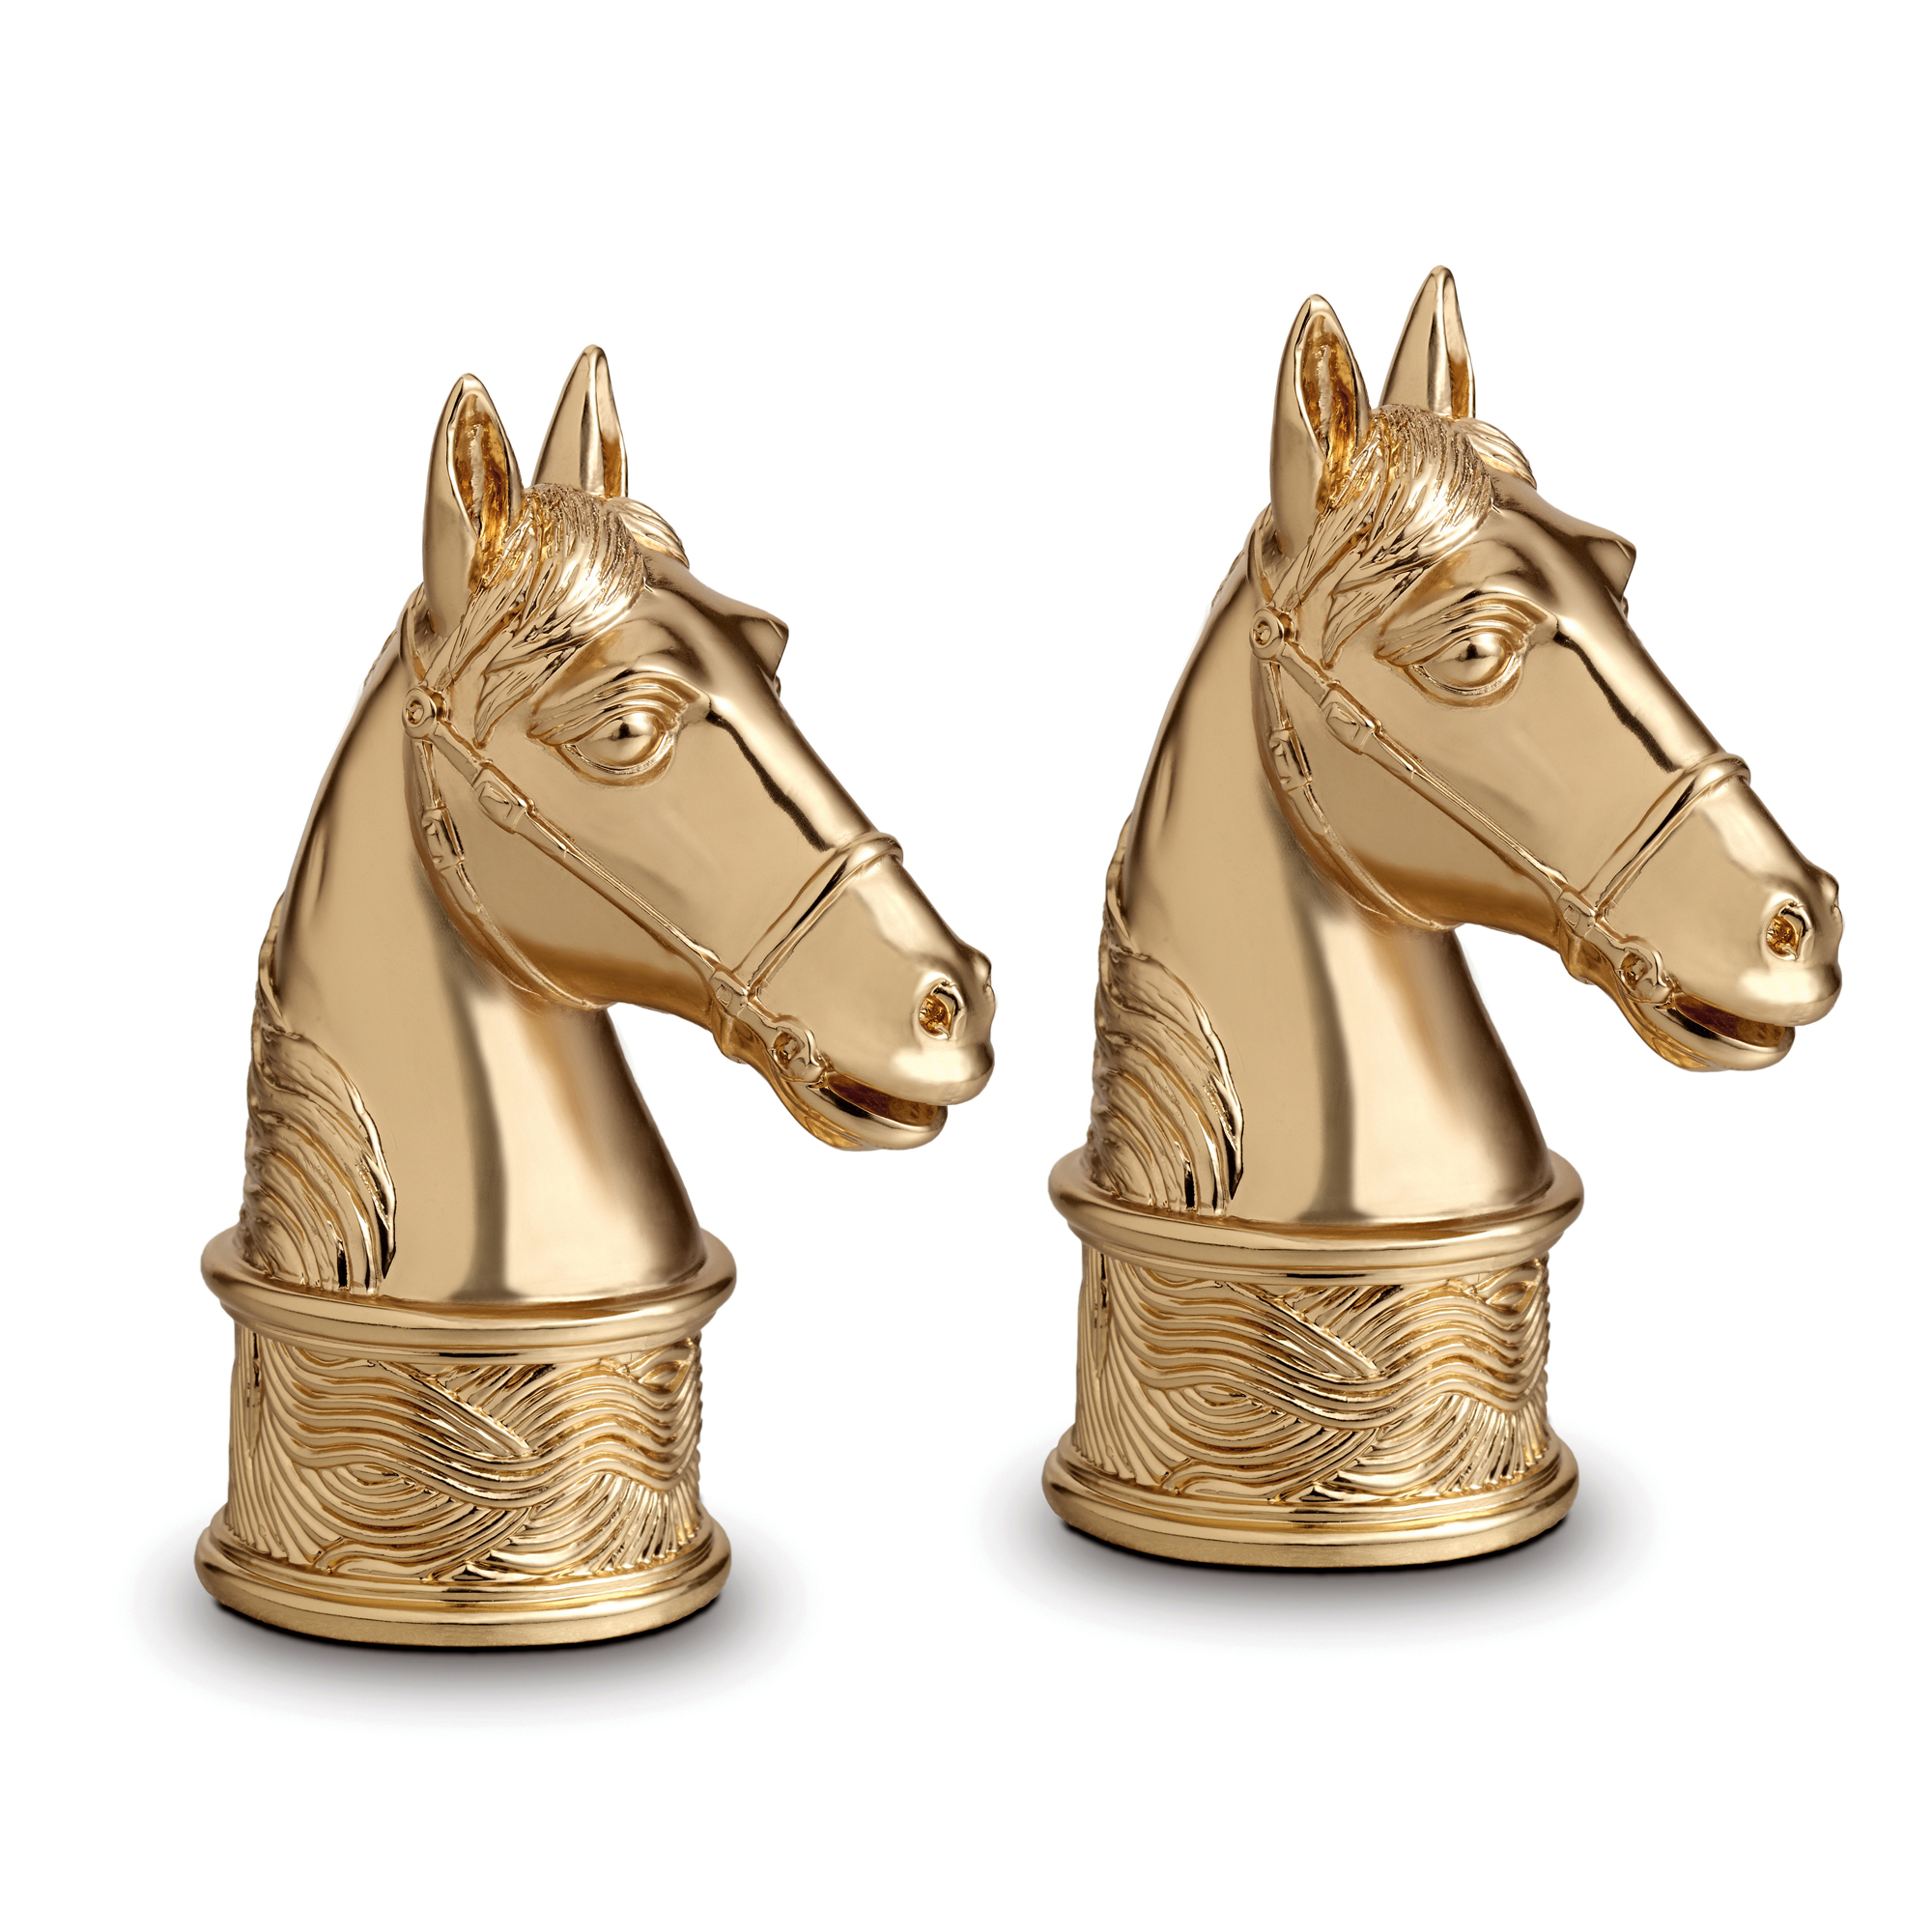 L'Objet Horse Salt & Pepper Shakers